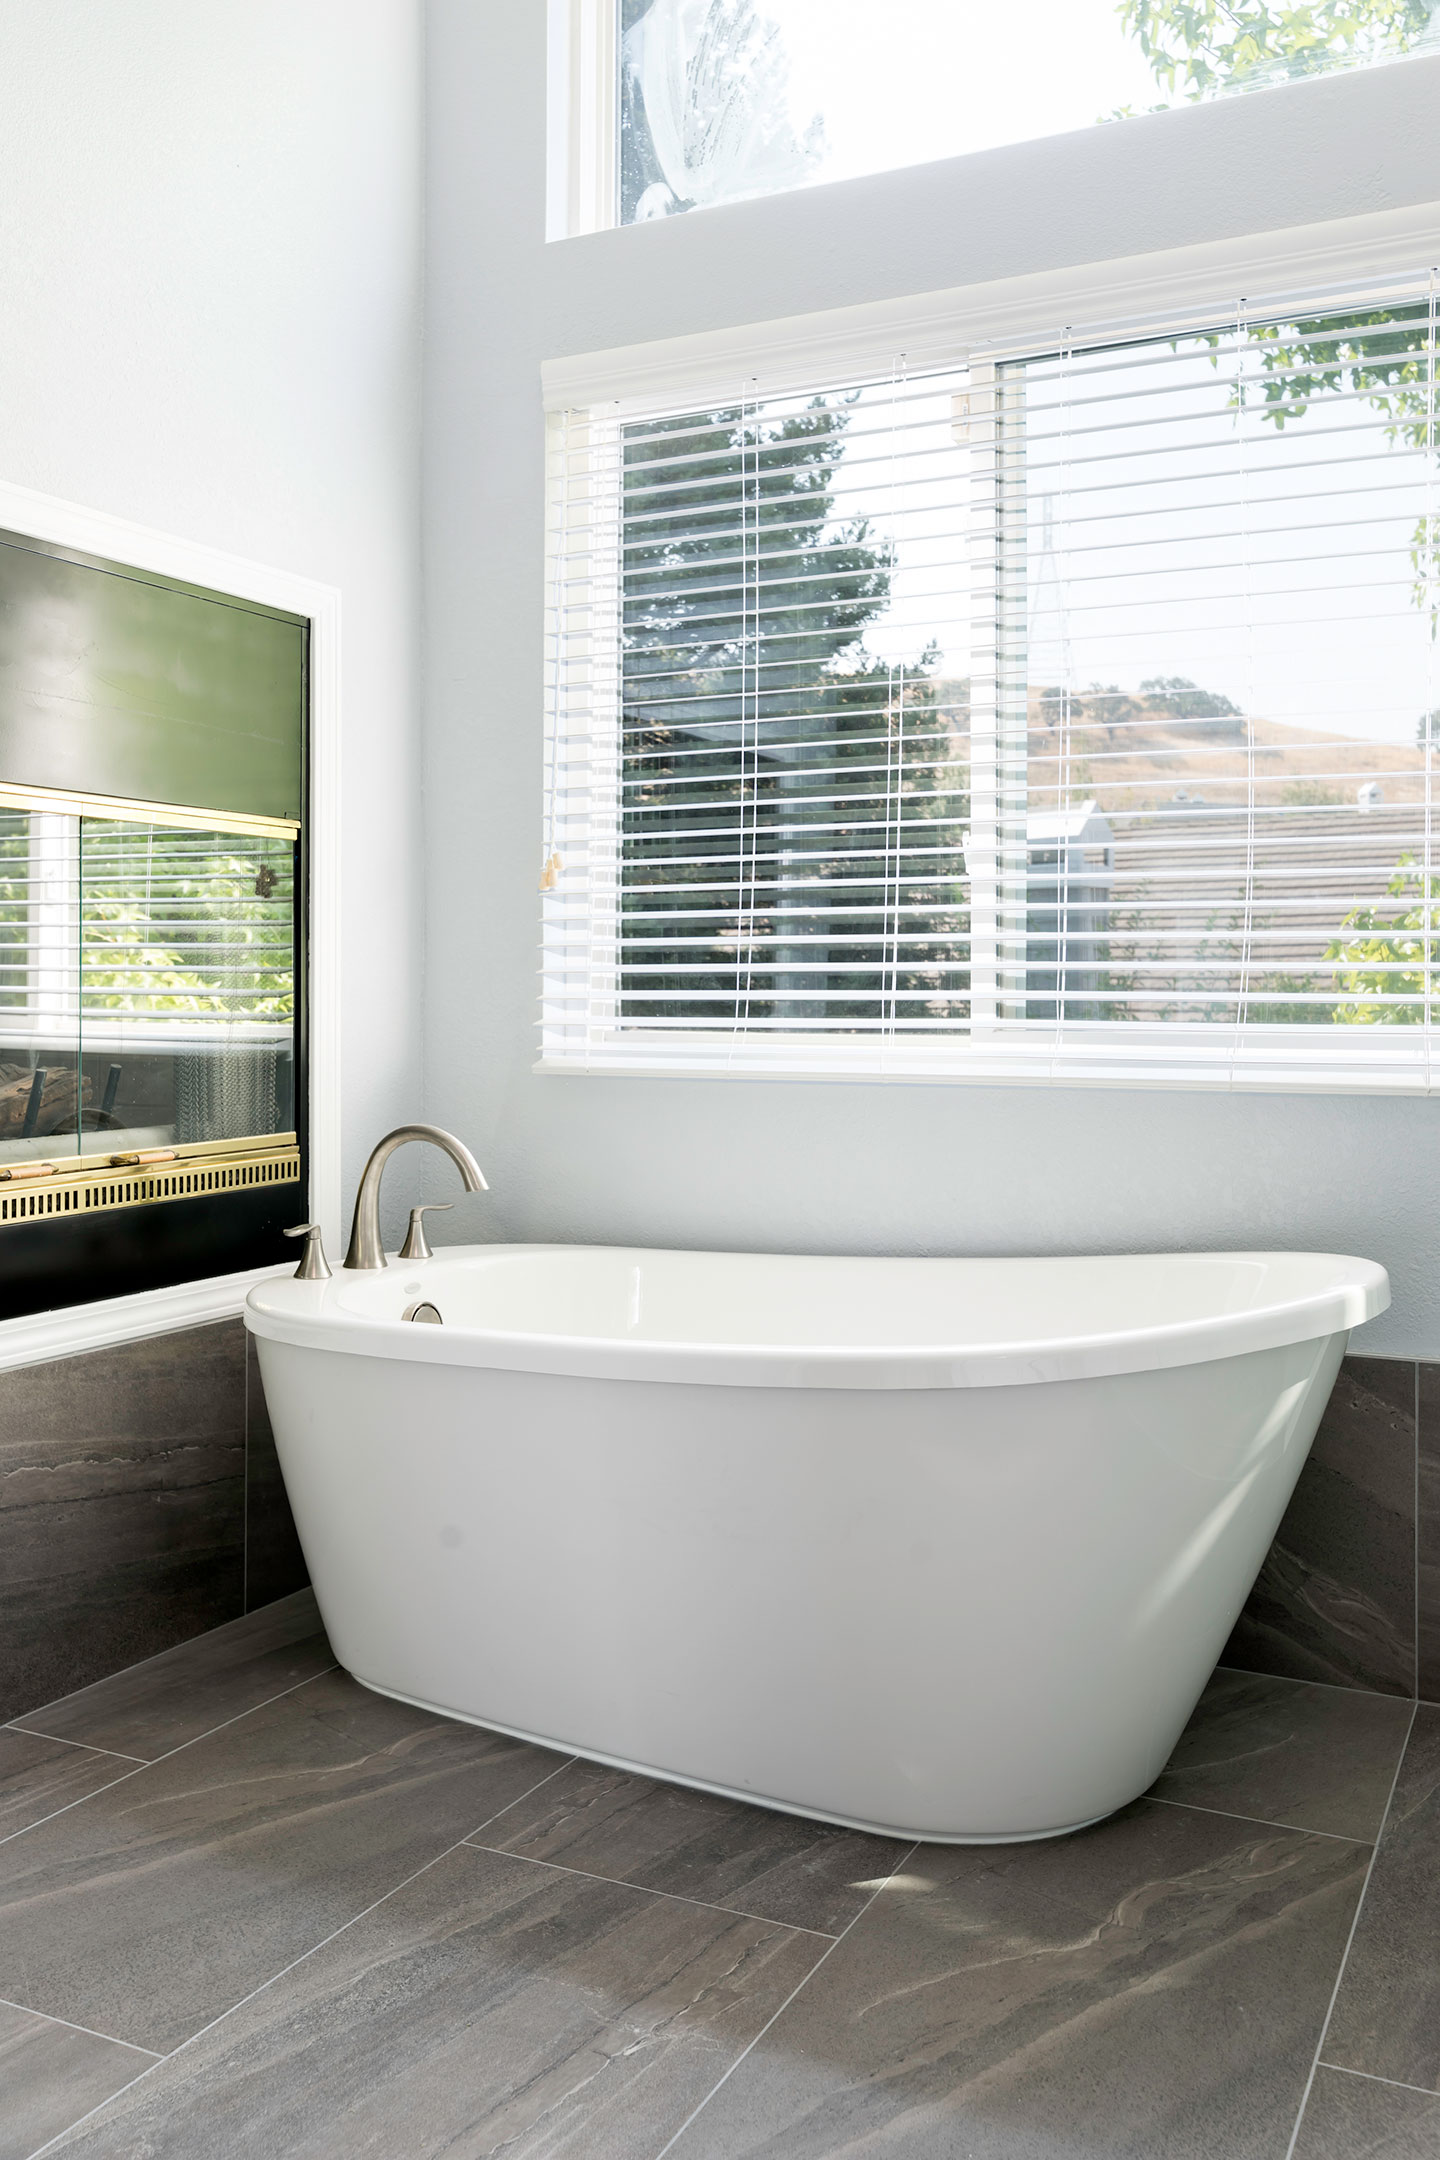 freestanding tub with a window view